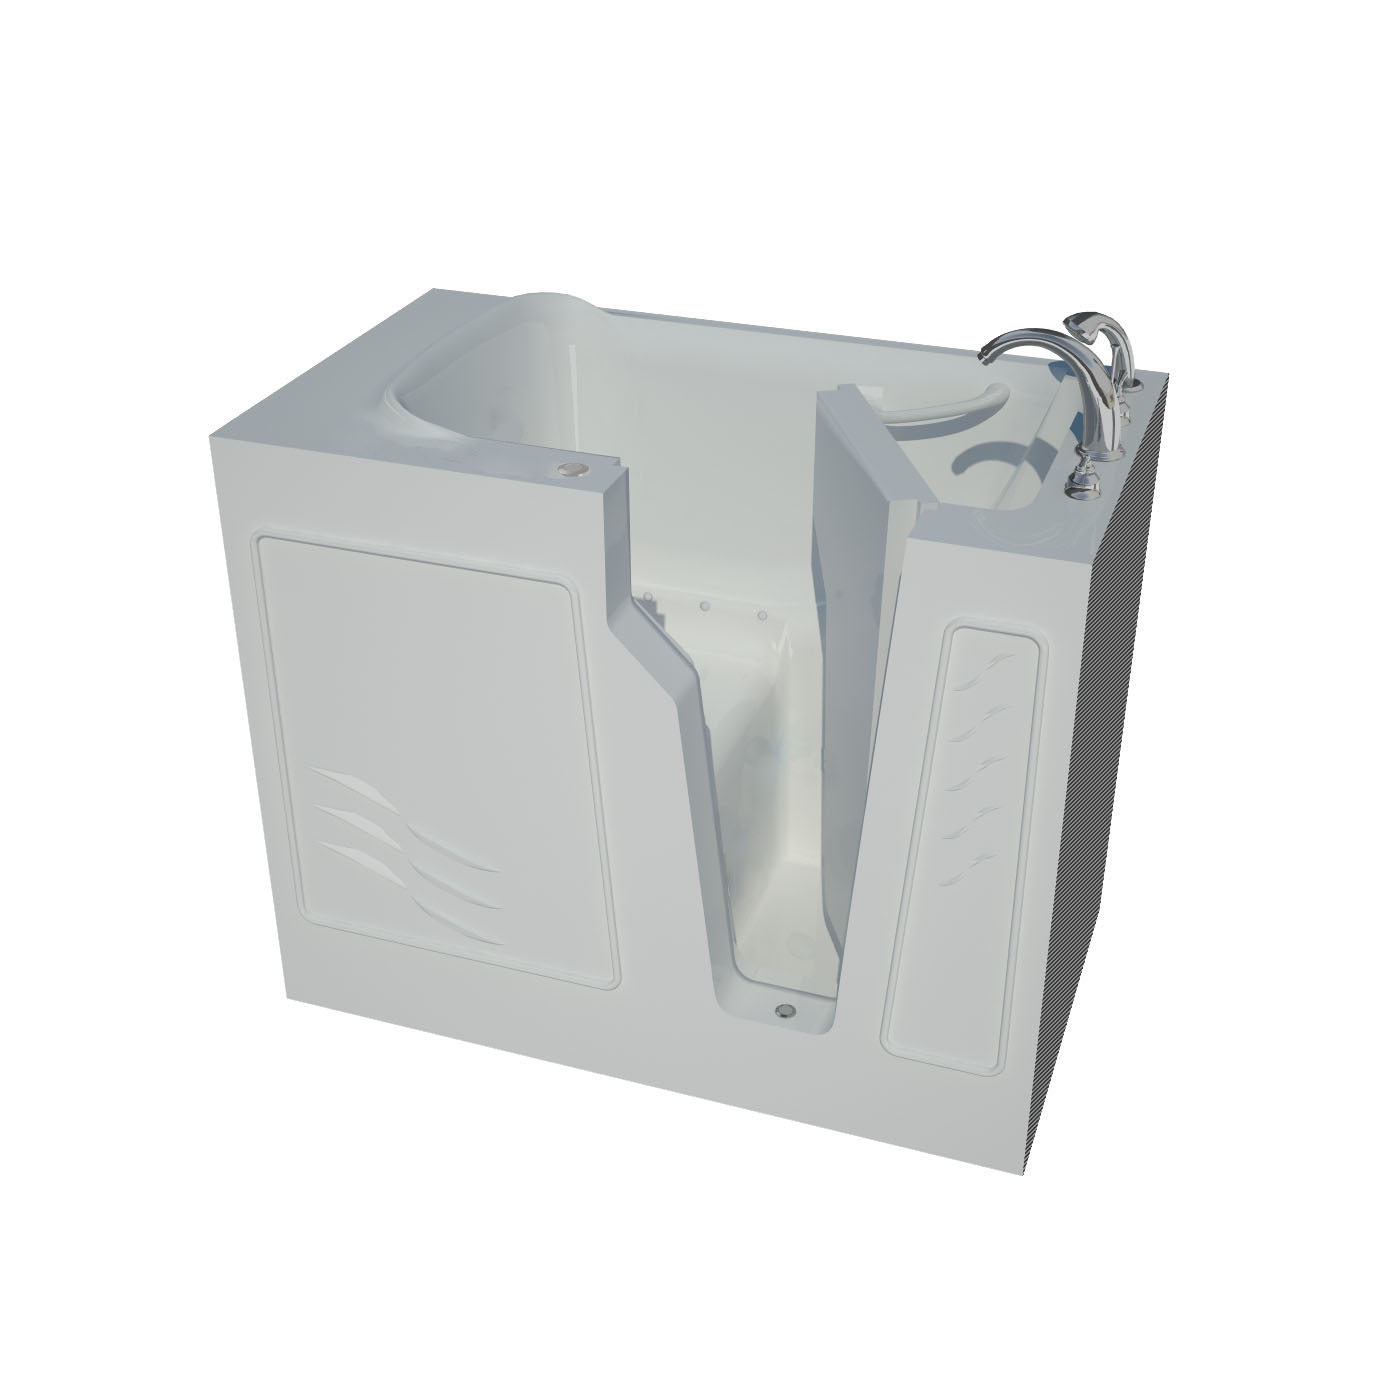 26 x 46 Right Drain Air Jetted Walk-In Bathtub in White